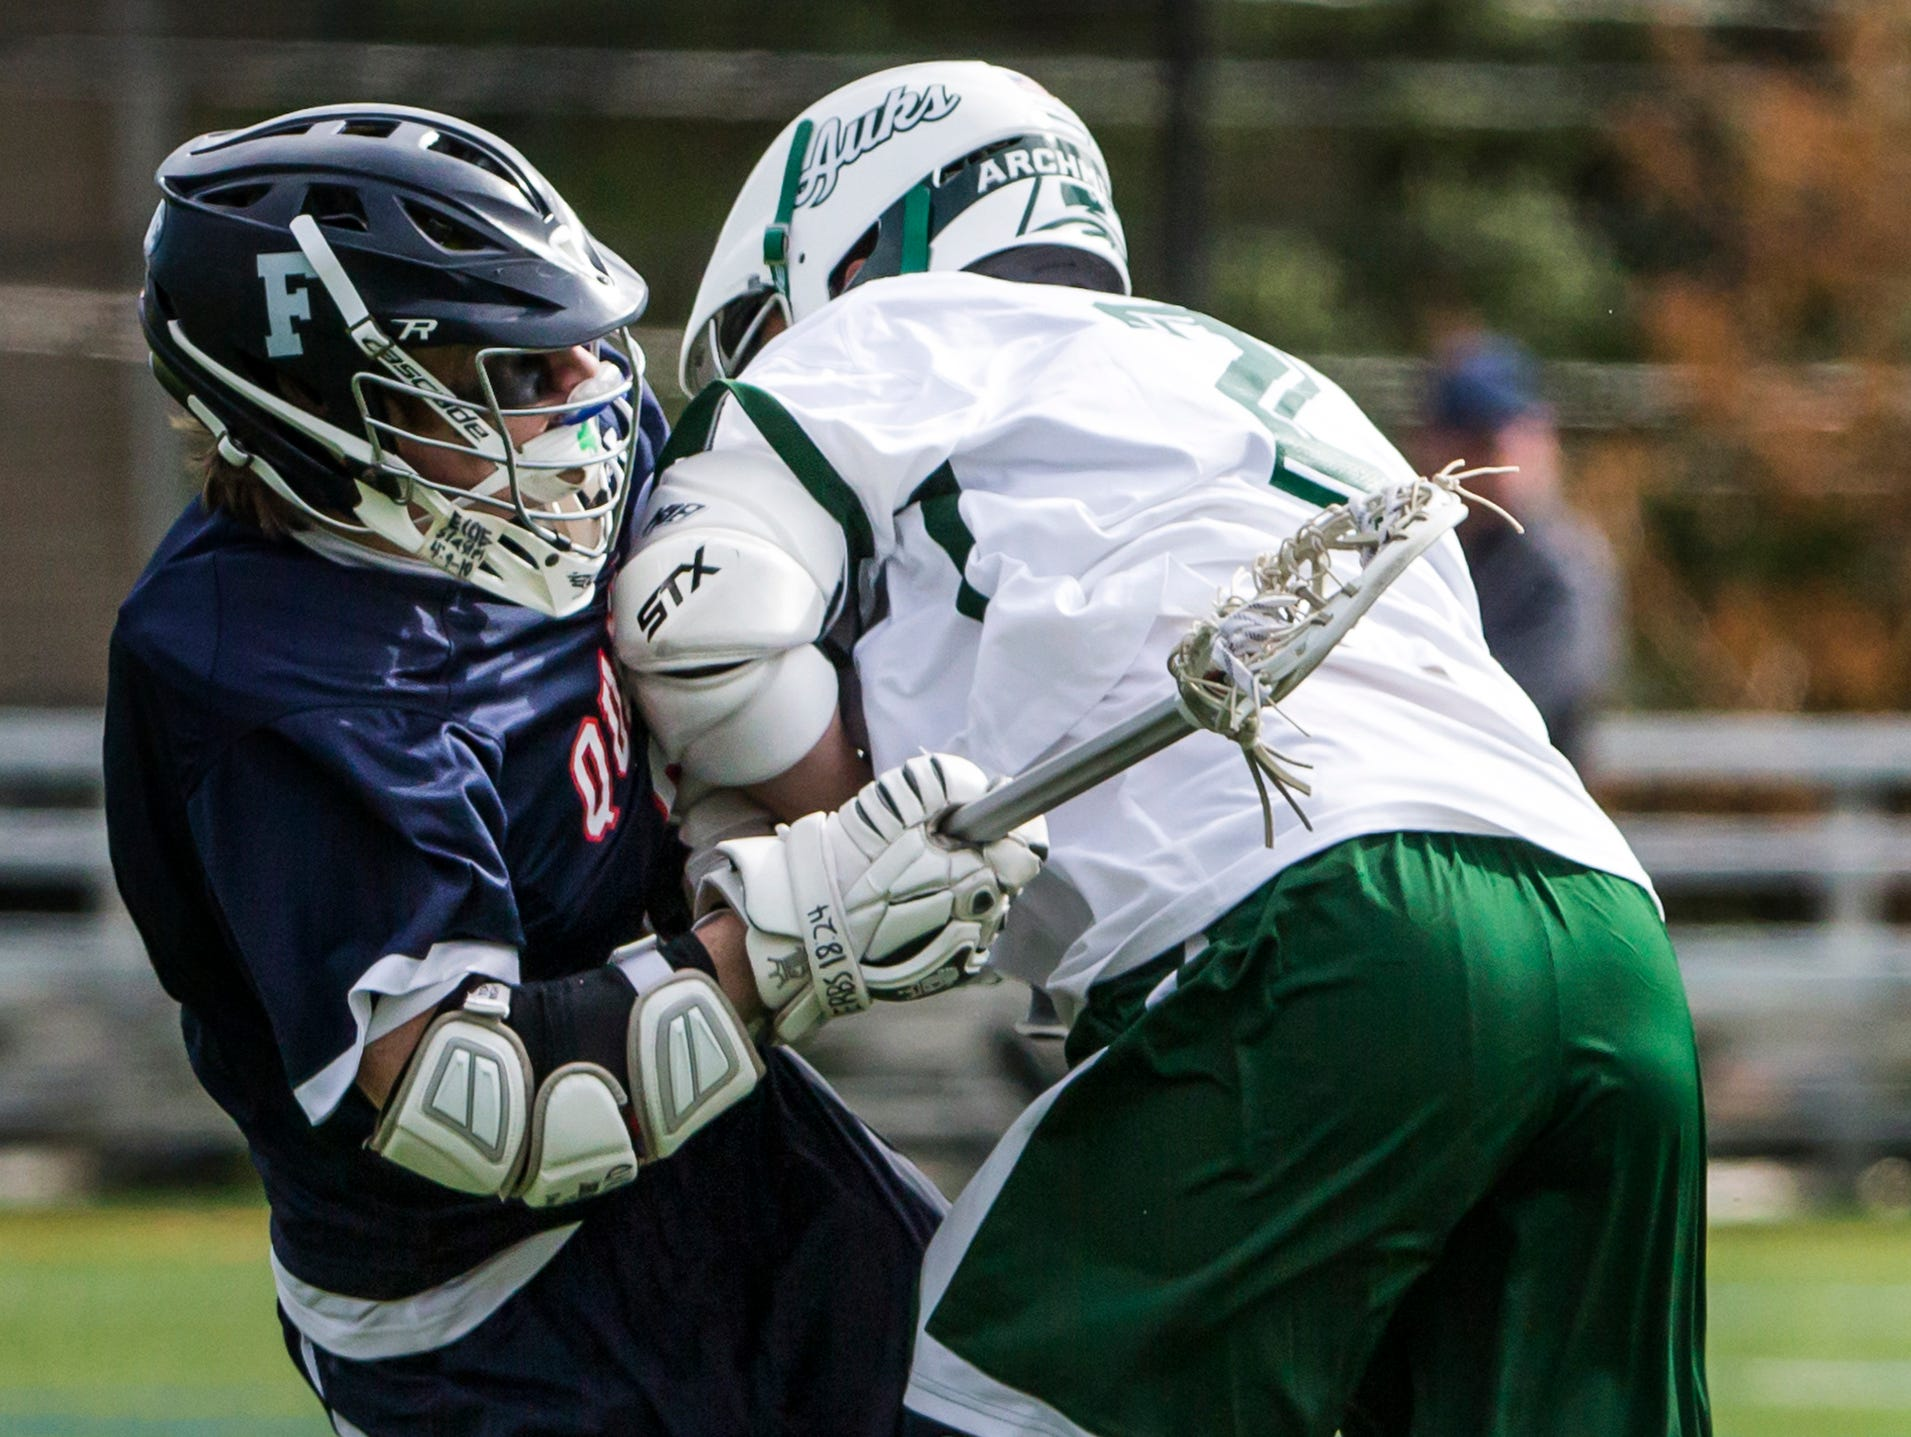 Wilmington Friends' River Harper takes a hit after a shot on goal from Archmere's Connor Dennewitz in Archmere Academy's 13-8 win over Wilmington Friends School at Archmere on Thursday afternoon. Harper scored on the play.